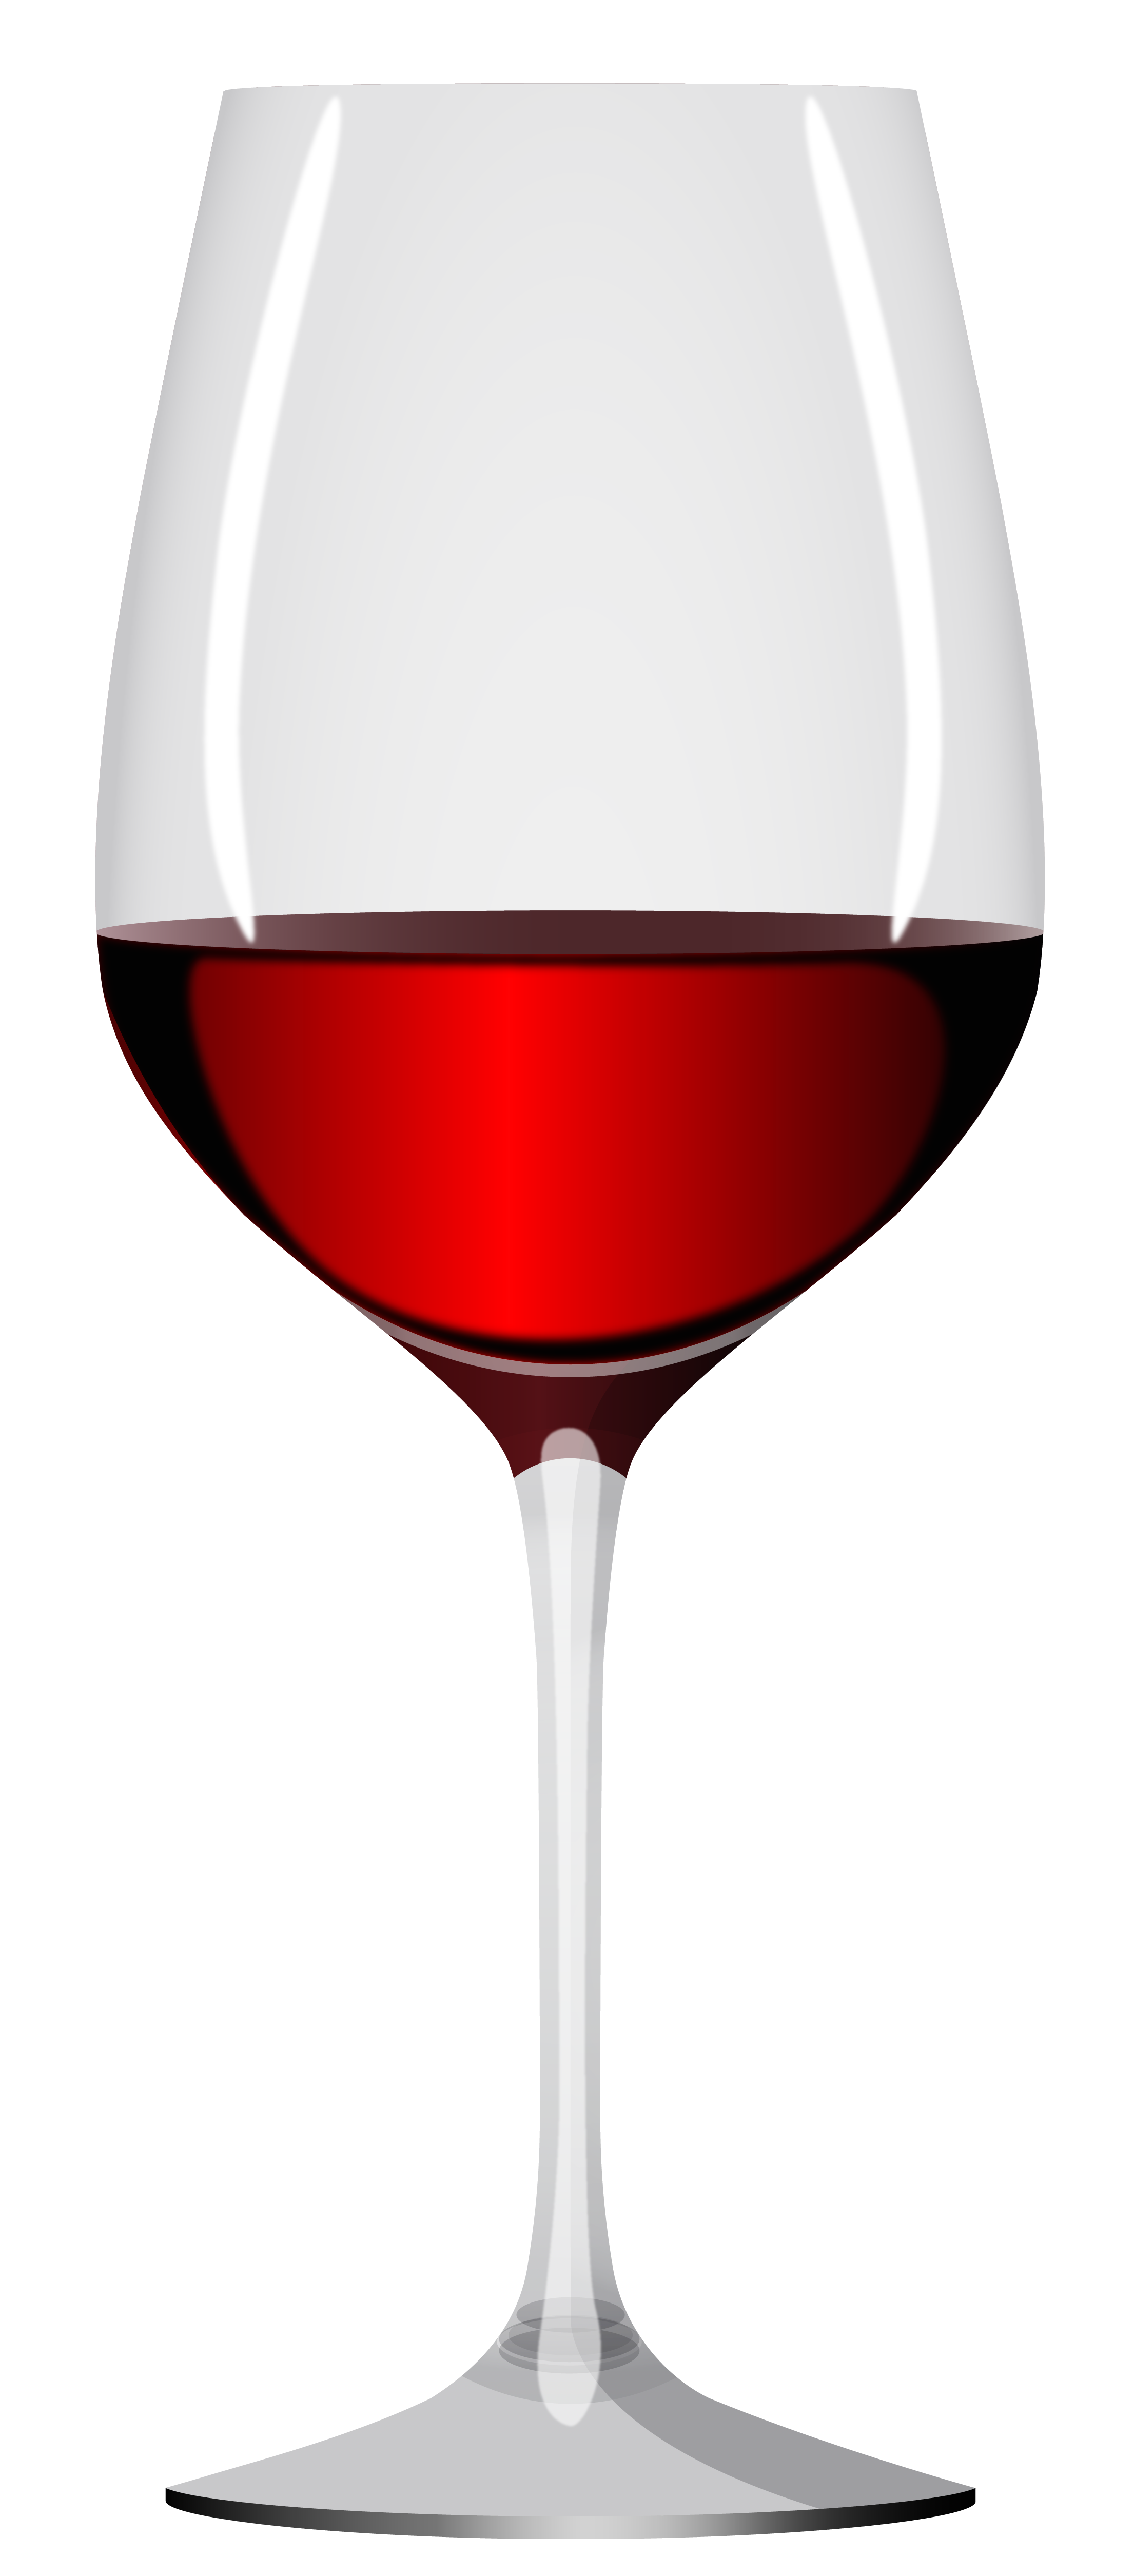 Wine clipart png. Glass of red image